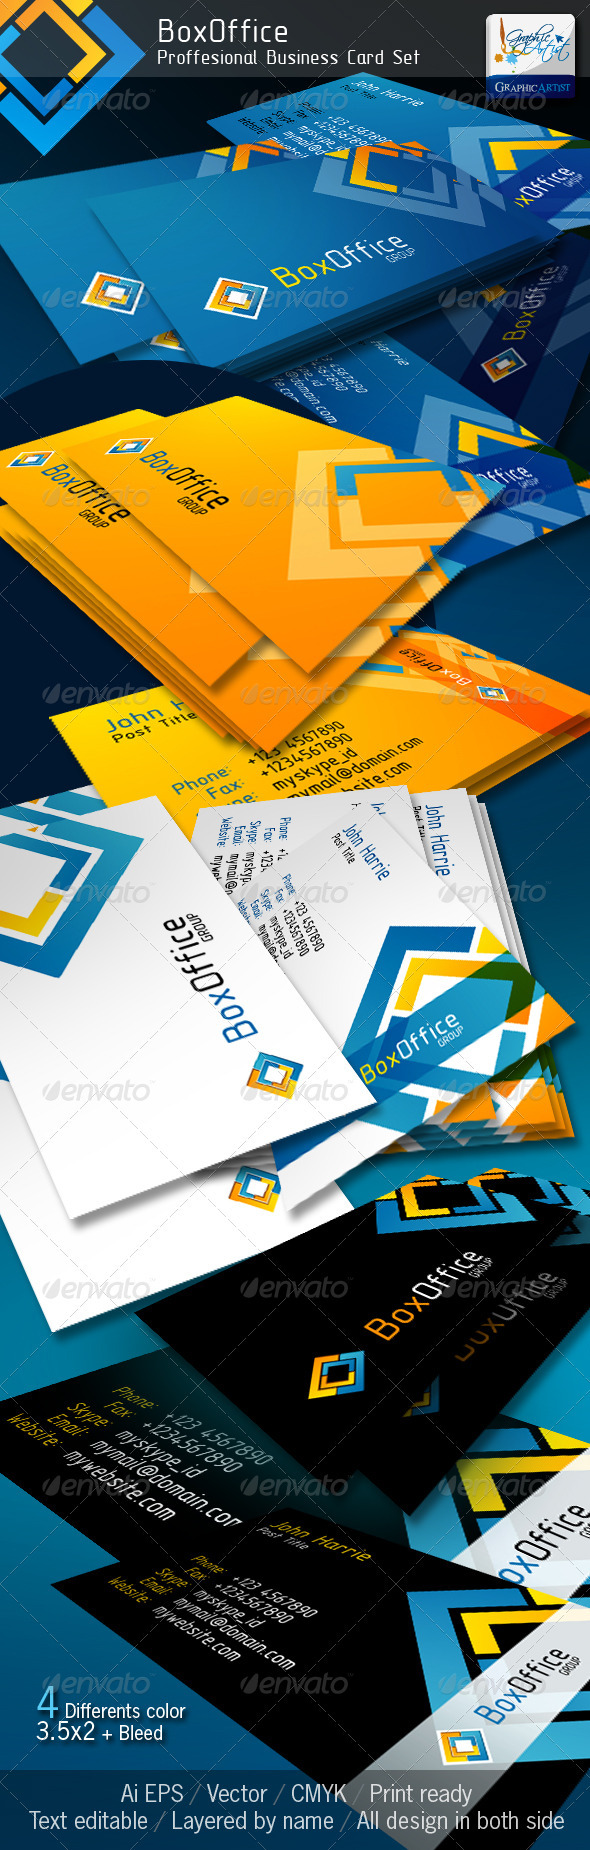 BoxOffice Official Business Card - Corporate Business Cards